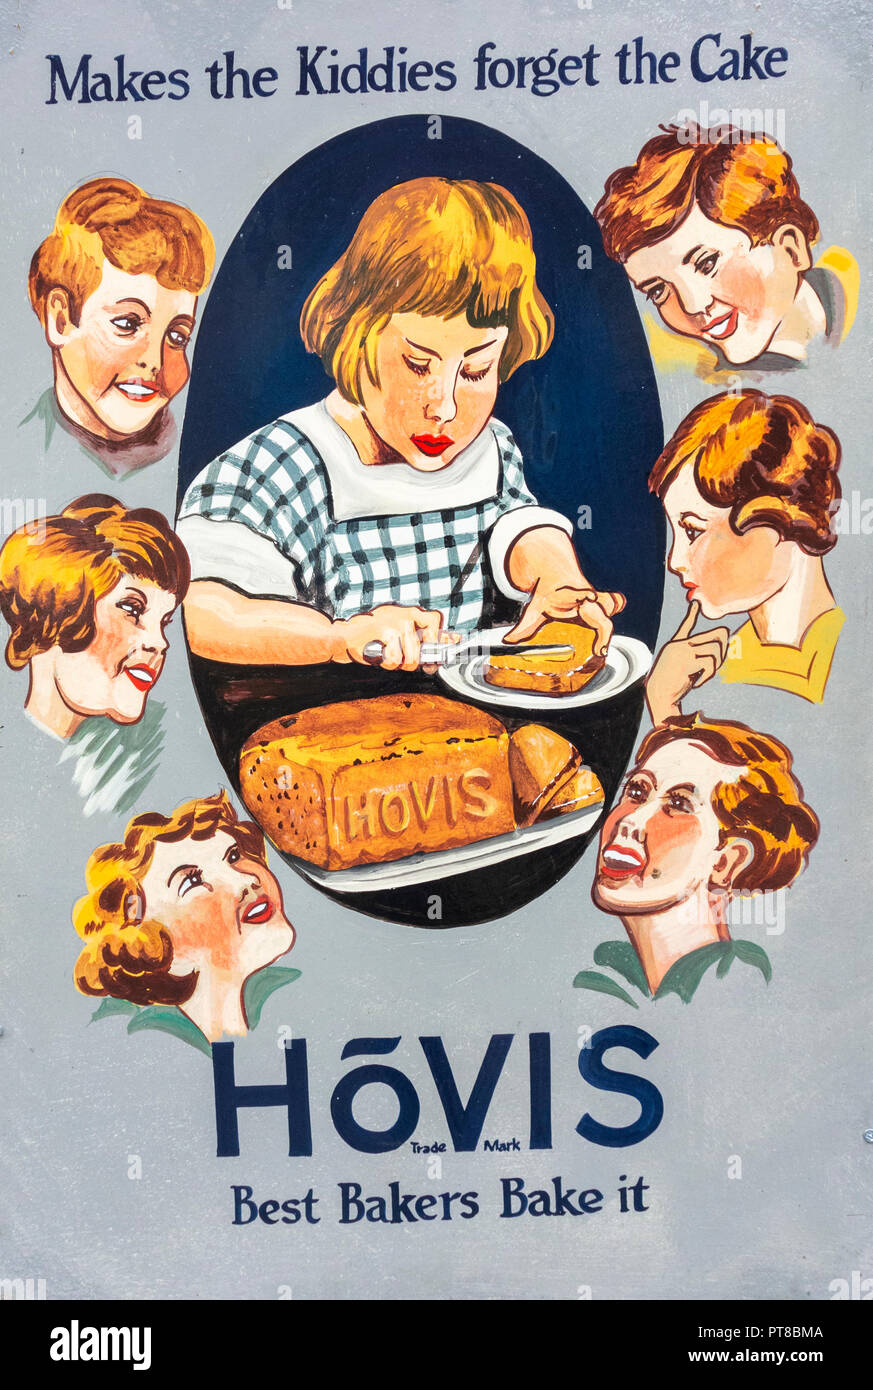 Vintage Hovis bread poster - Stock Image